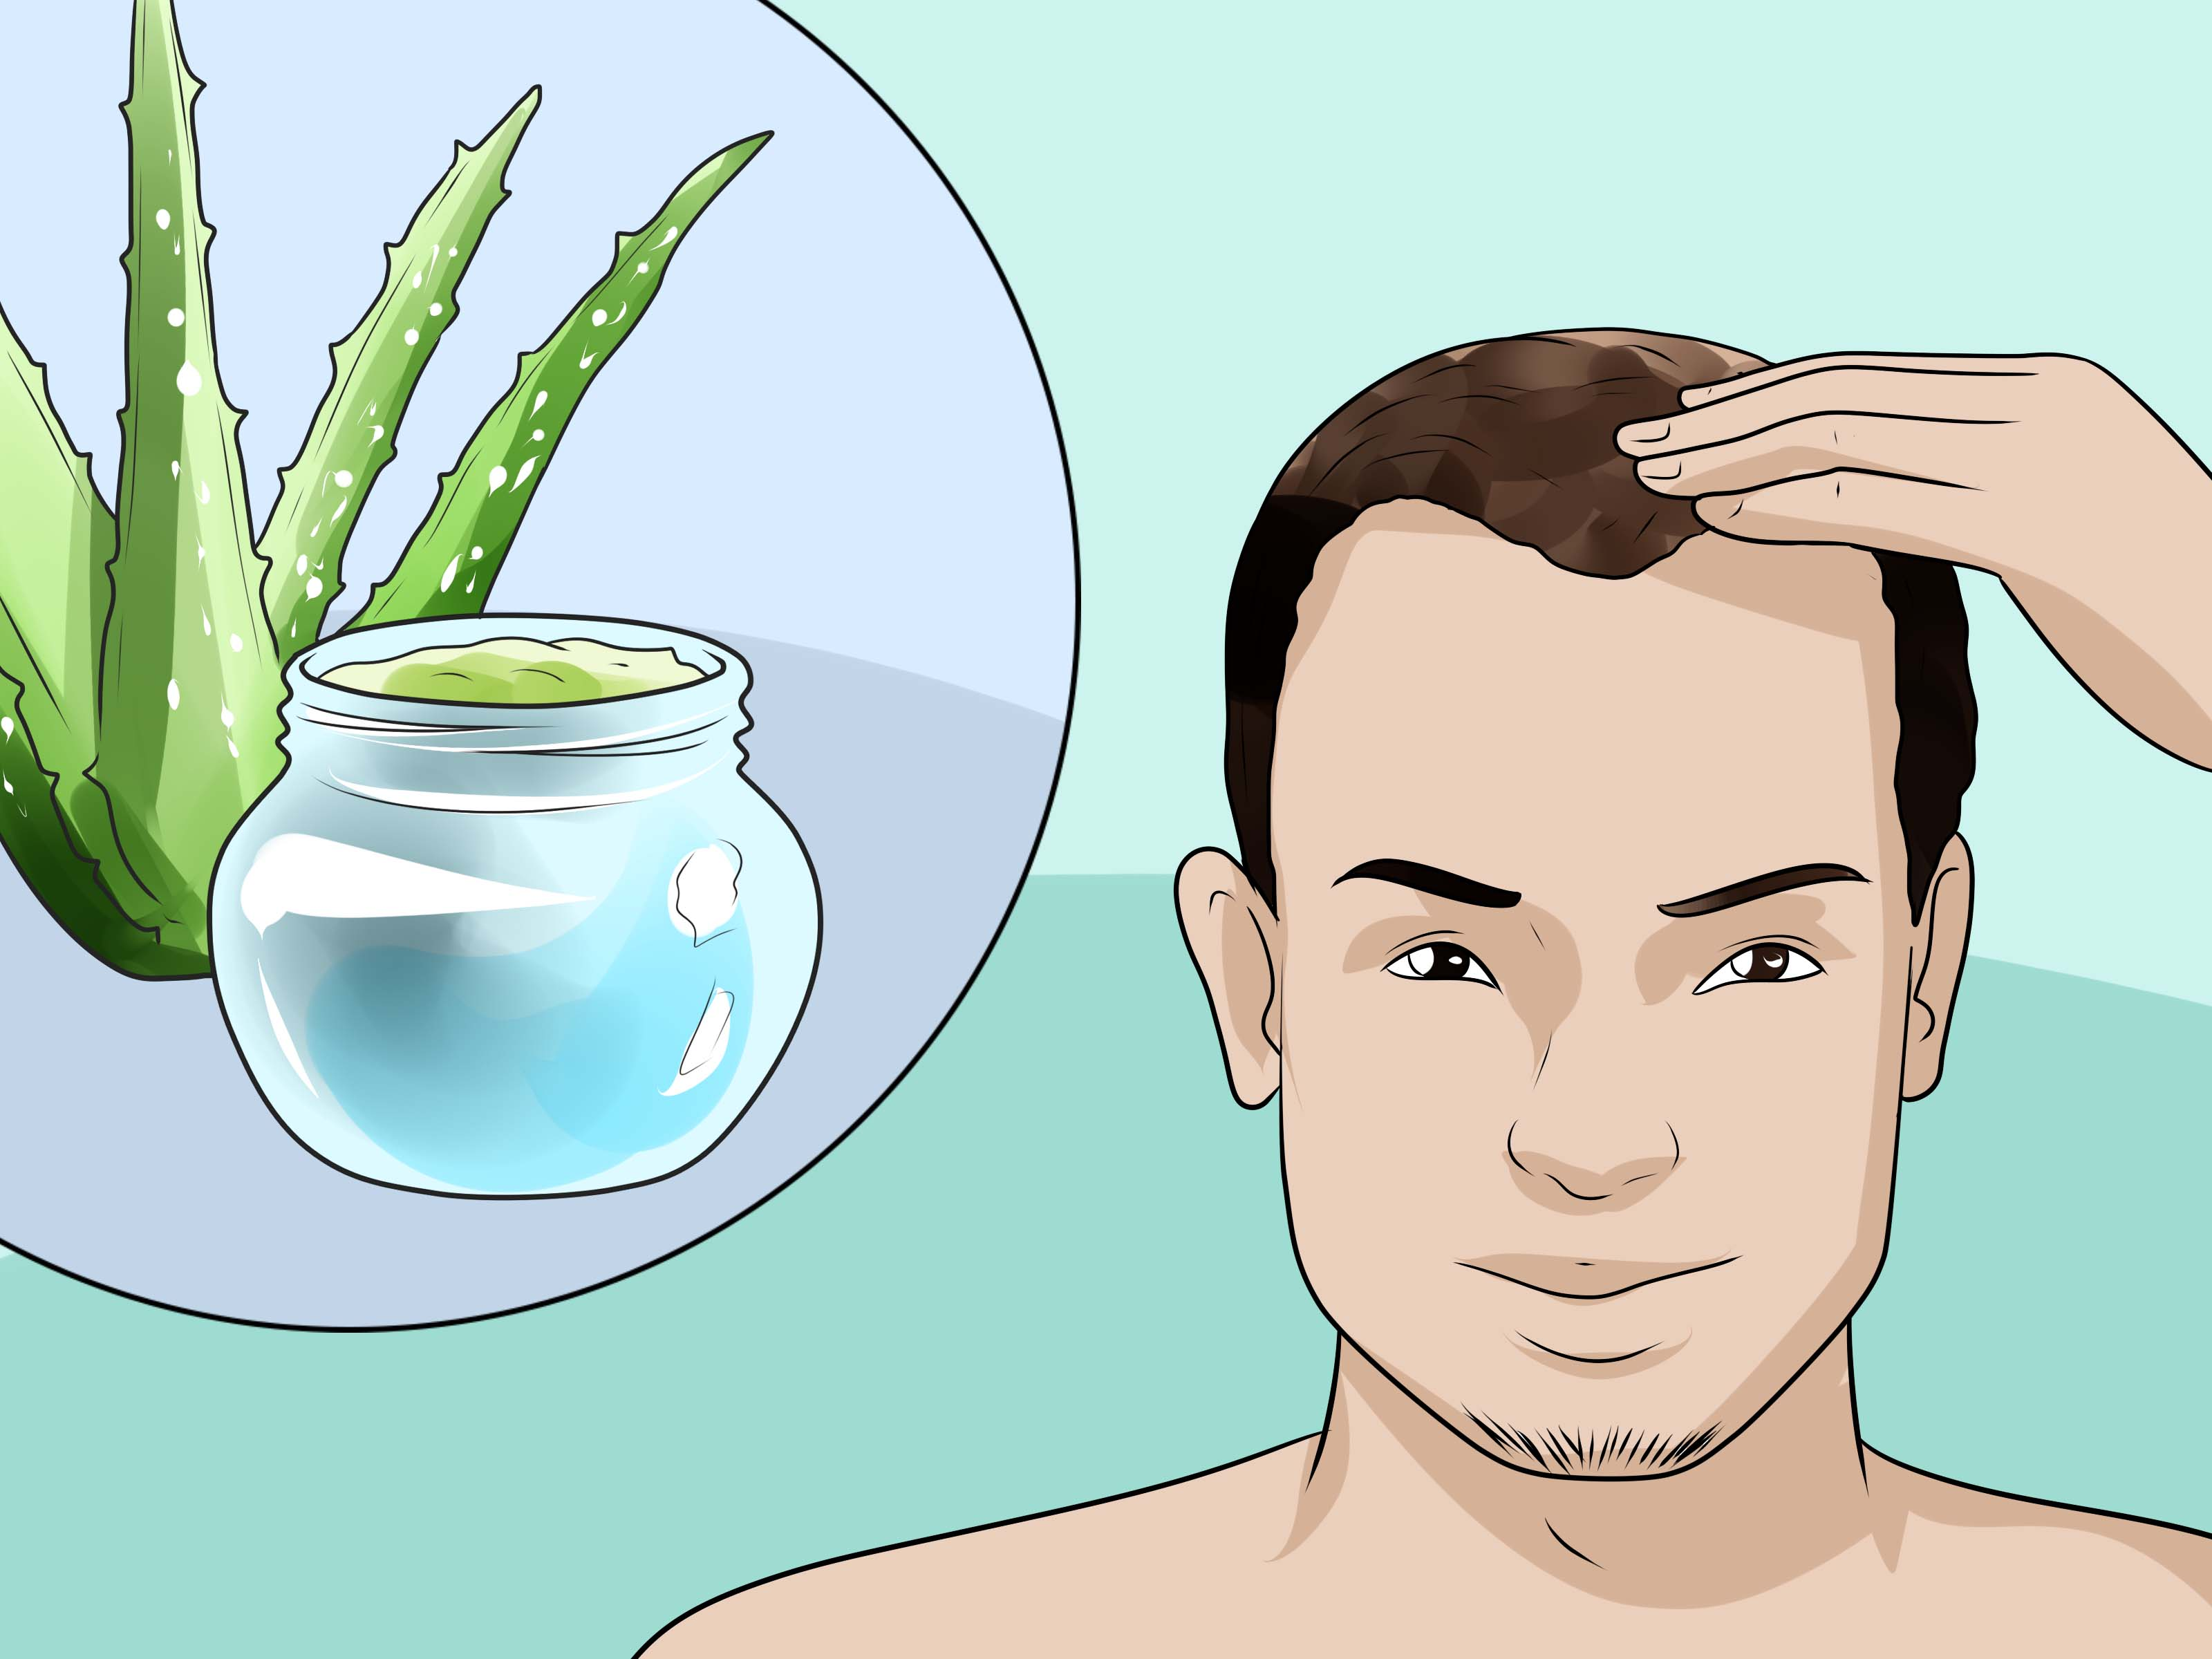 Getting Bald? Grow Hair faster with these simple hacks